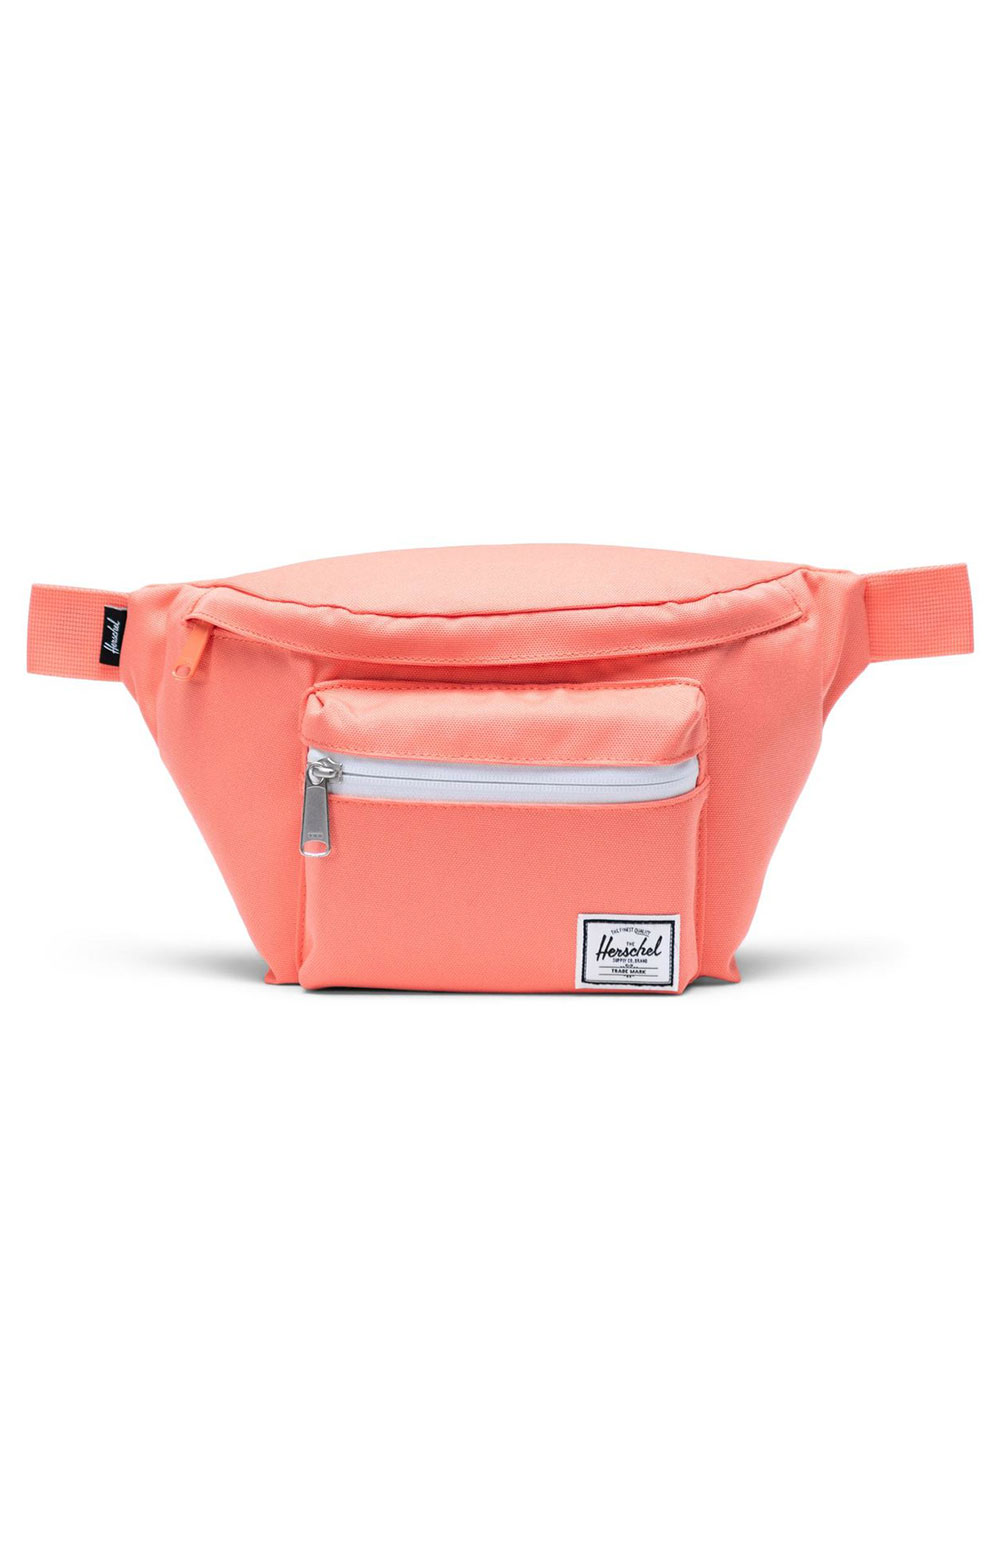 Seventeen Fanny Pack - Fresh Salmon